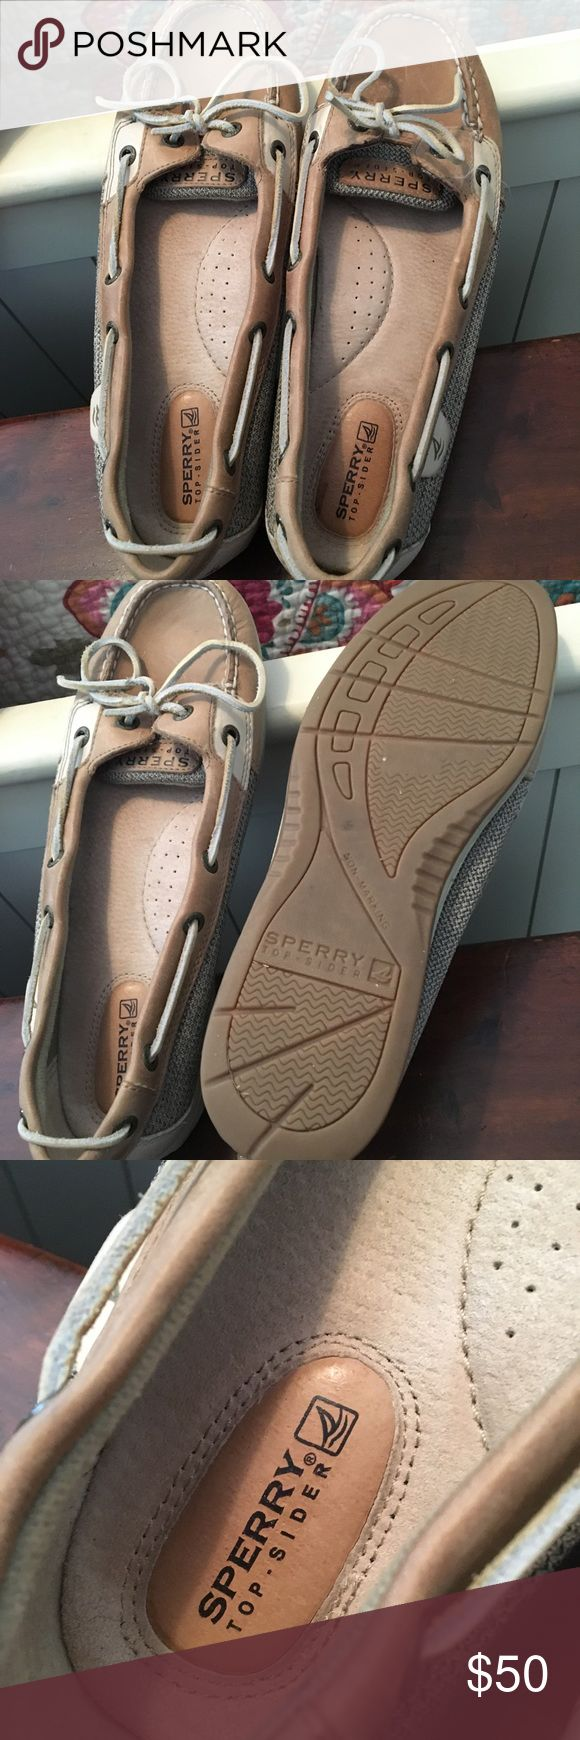 Women's Size 10 Sperry Top-Siders These boat shoes are in good condition. They have slight wear on them. Sperry Top-Sider Shoes Athletic Shoes